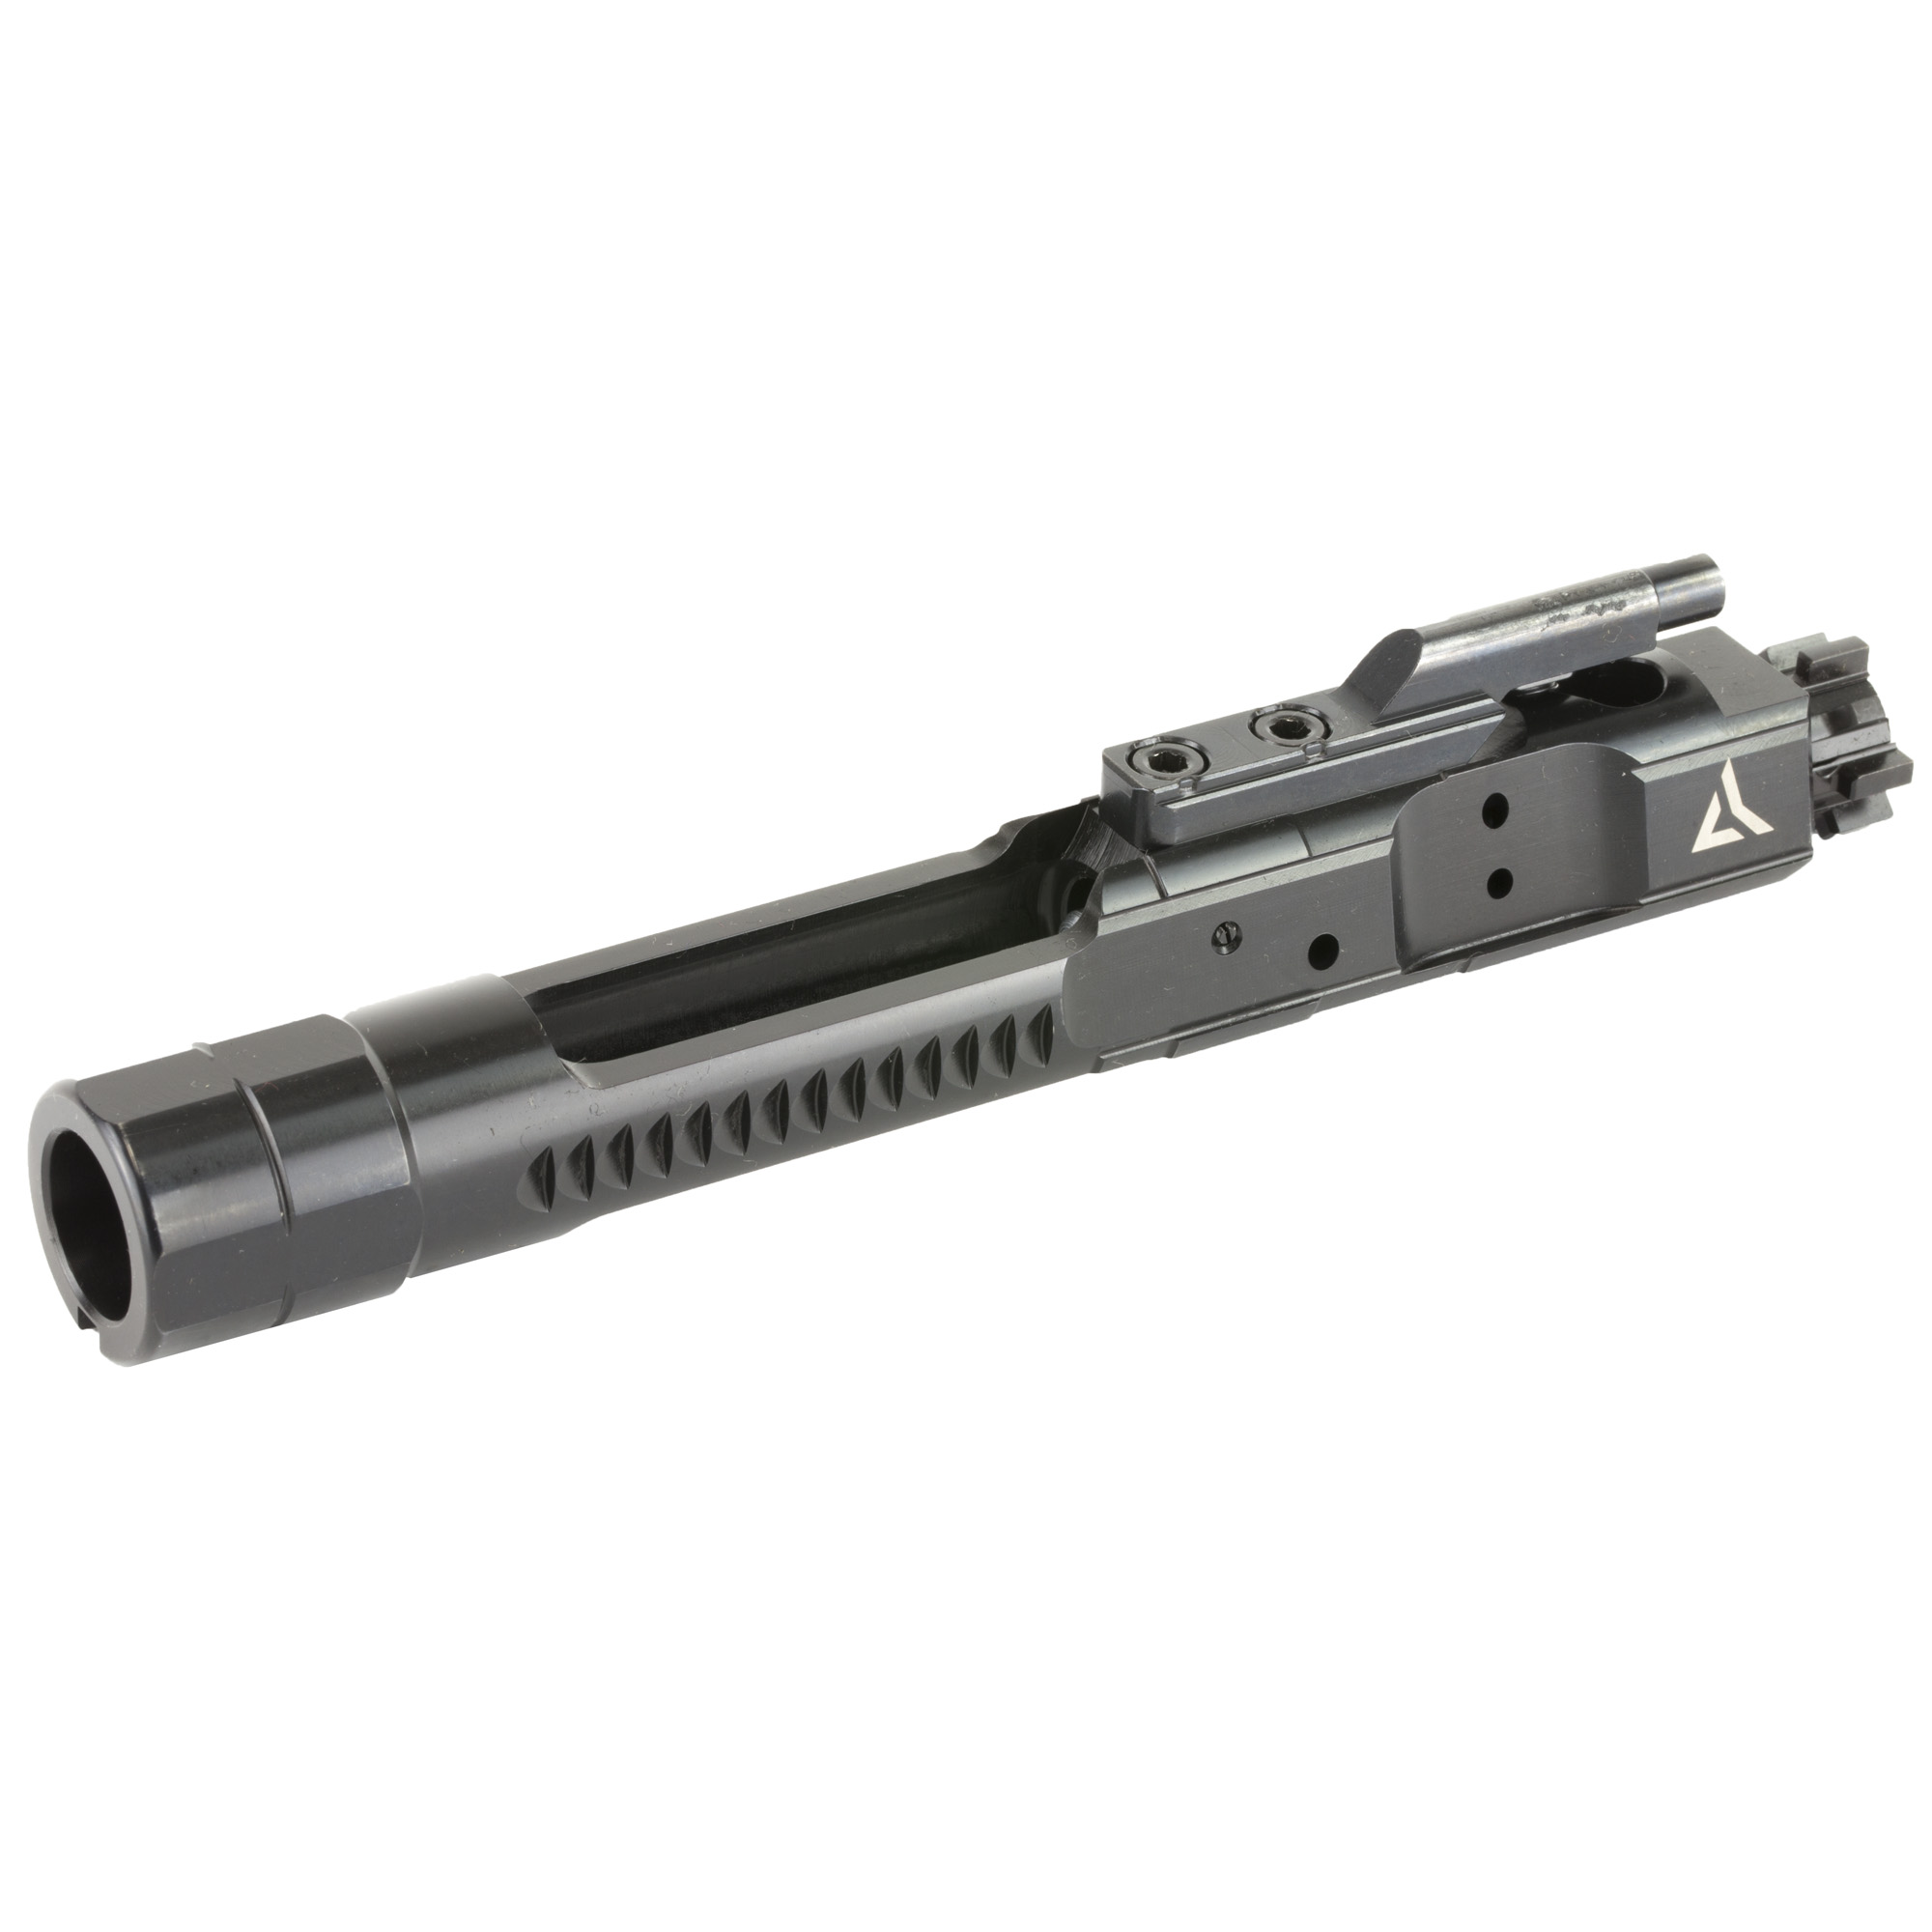 "The Enhanced Bolt Carrier Group for AR15/M16 platform weapons was designed to minimize carrier tilt and reduce friction inside the upper receiver by relocating key bearing surfaces. All materials"" tolerances"" and coatings meet or exceed milspec standards for performance"" reliability"" and durability."